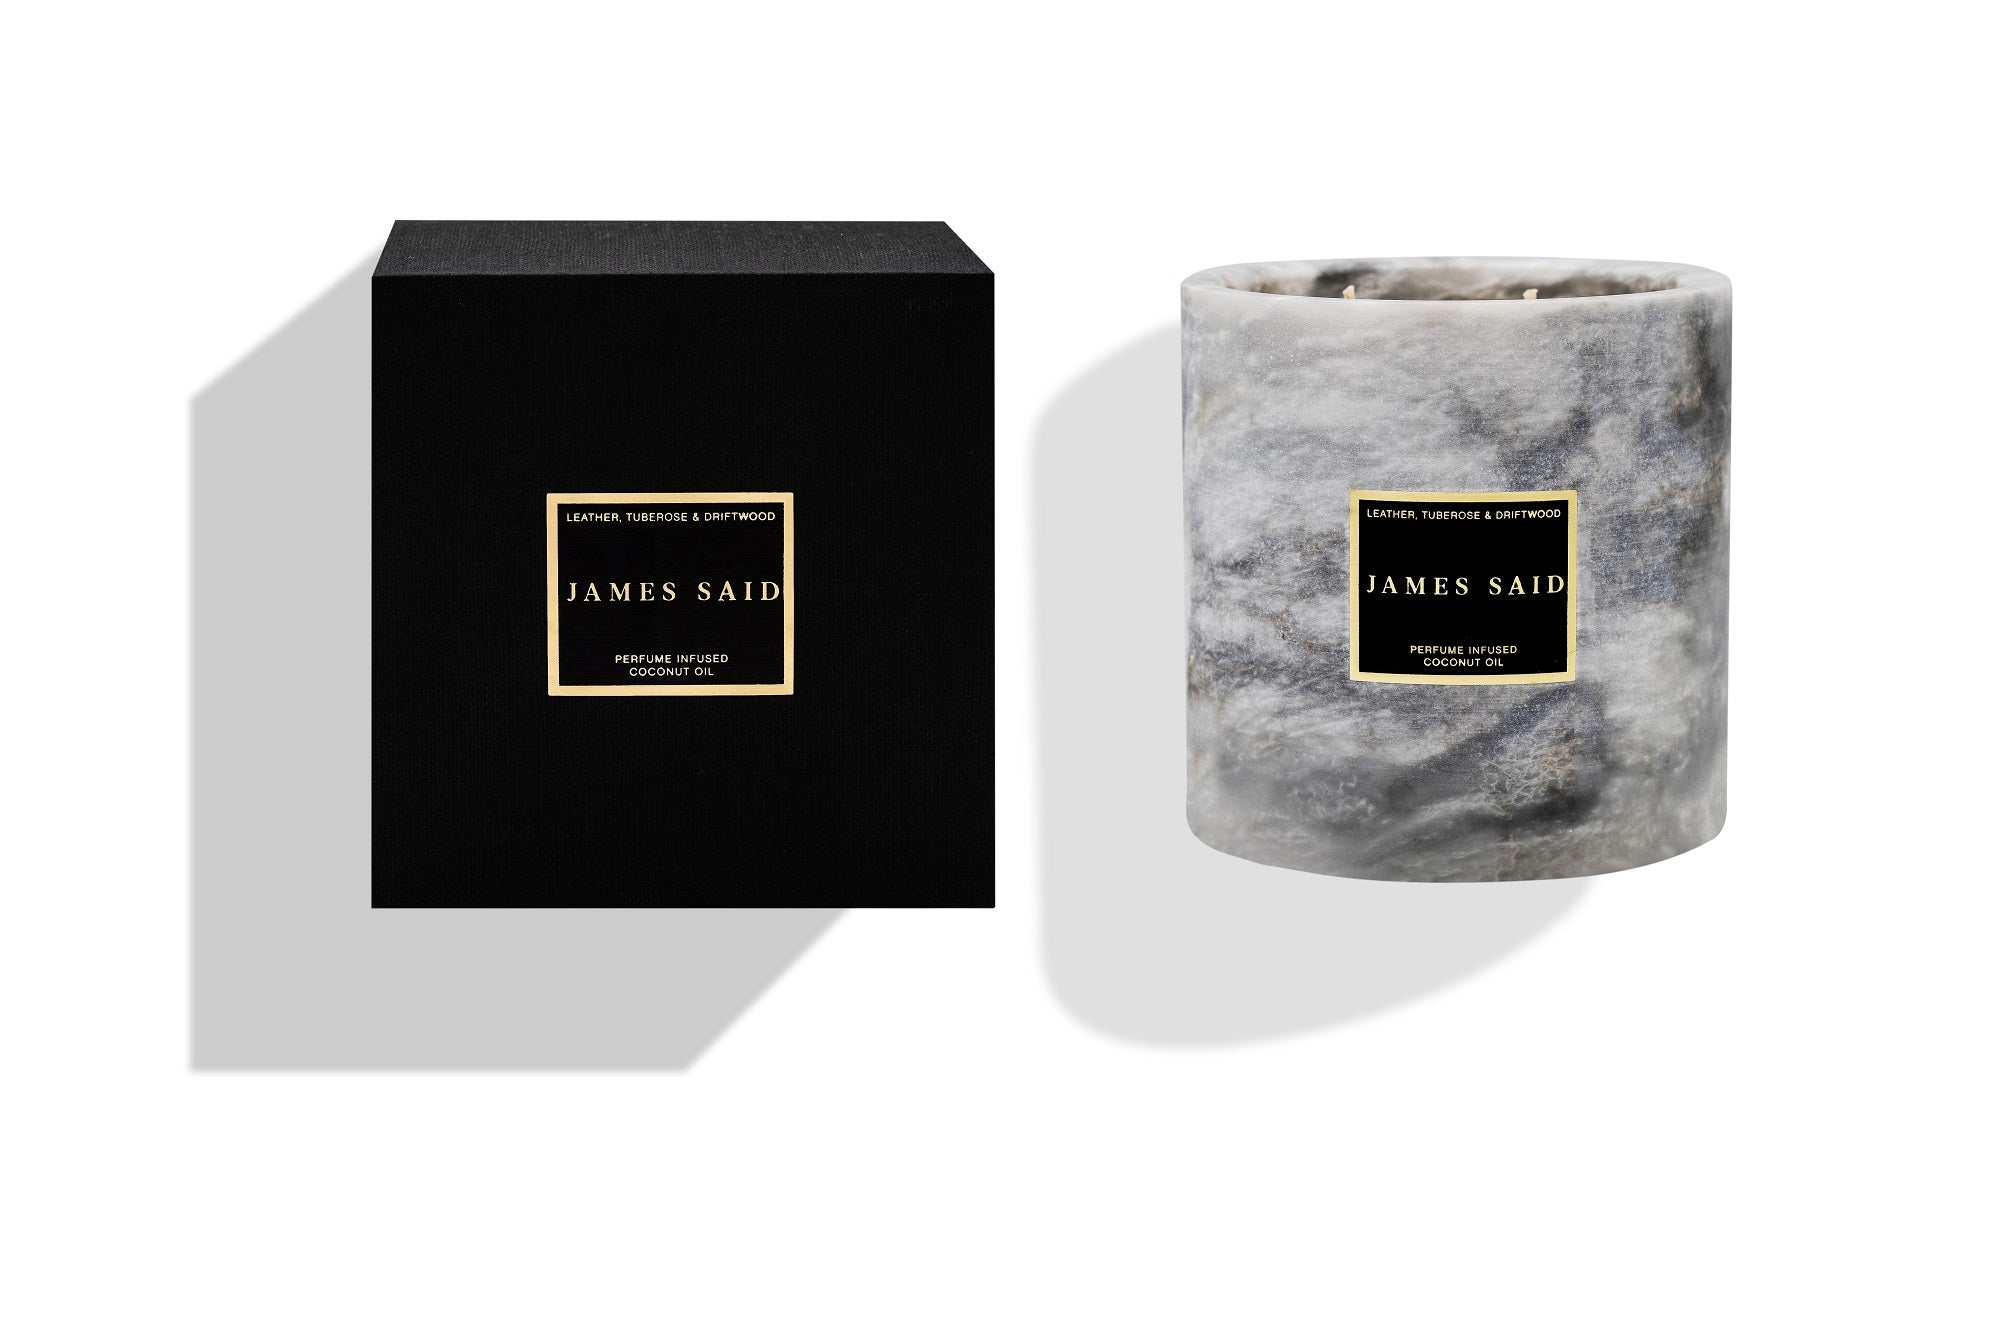 James Said Leather, Tuberose & Driftwood Onyx Smoked Candle - 1250g